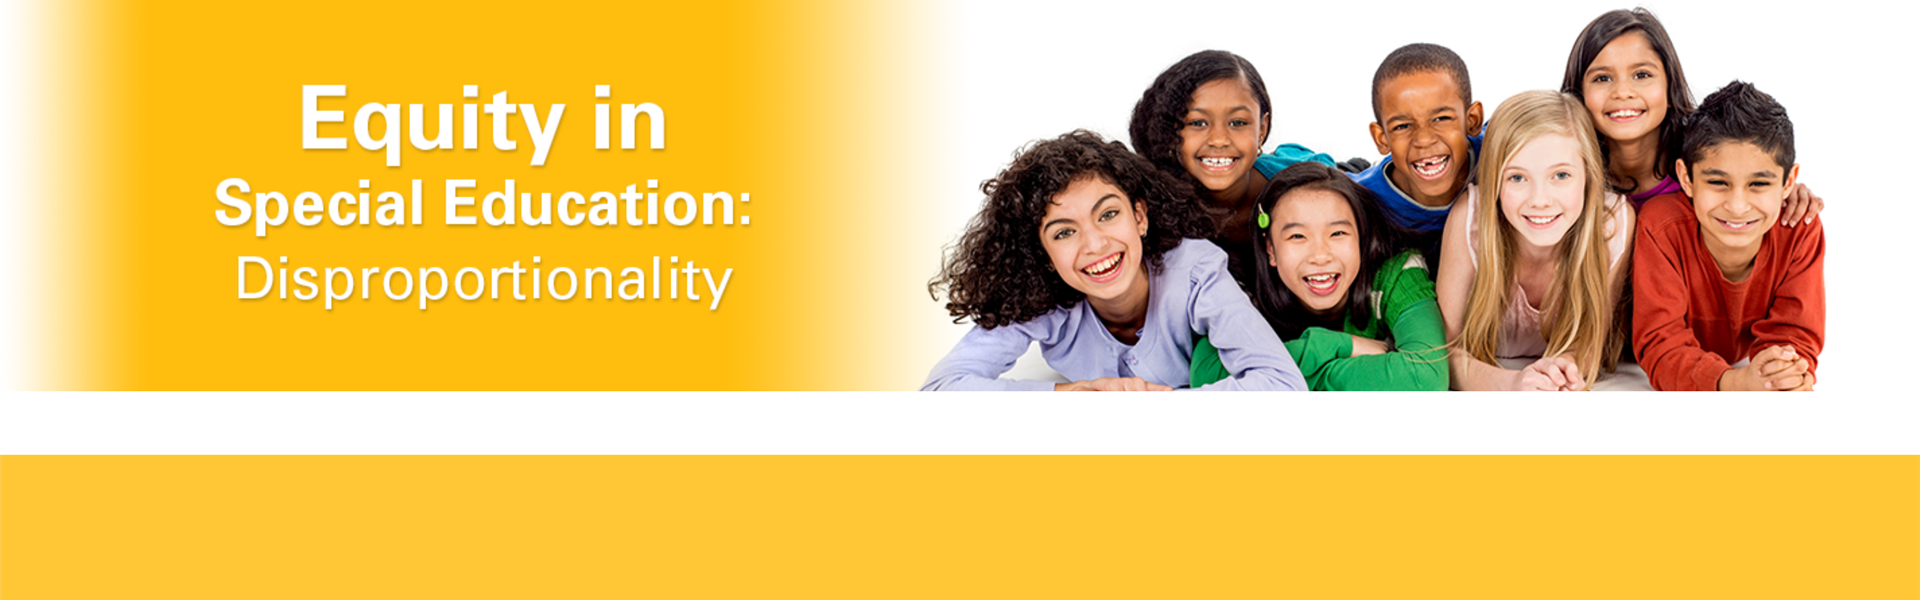 Equity in Special Education: Disproportionality banner